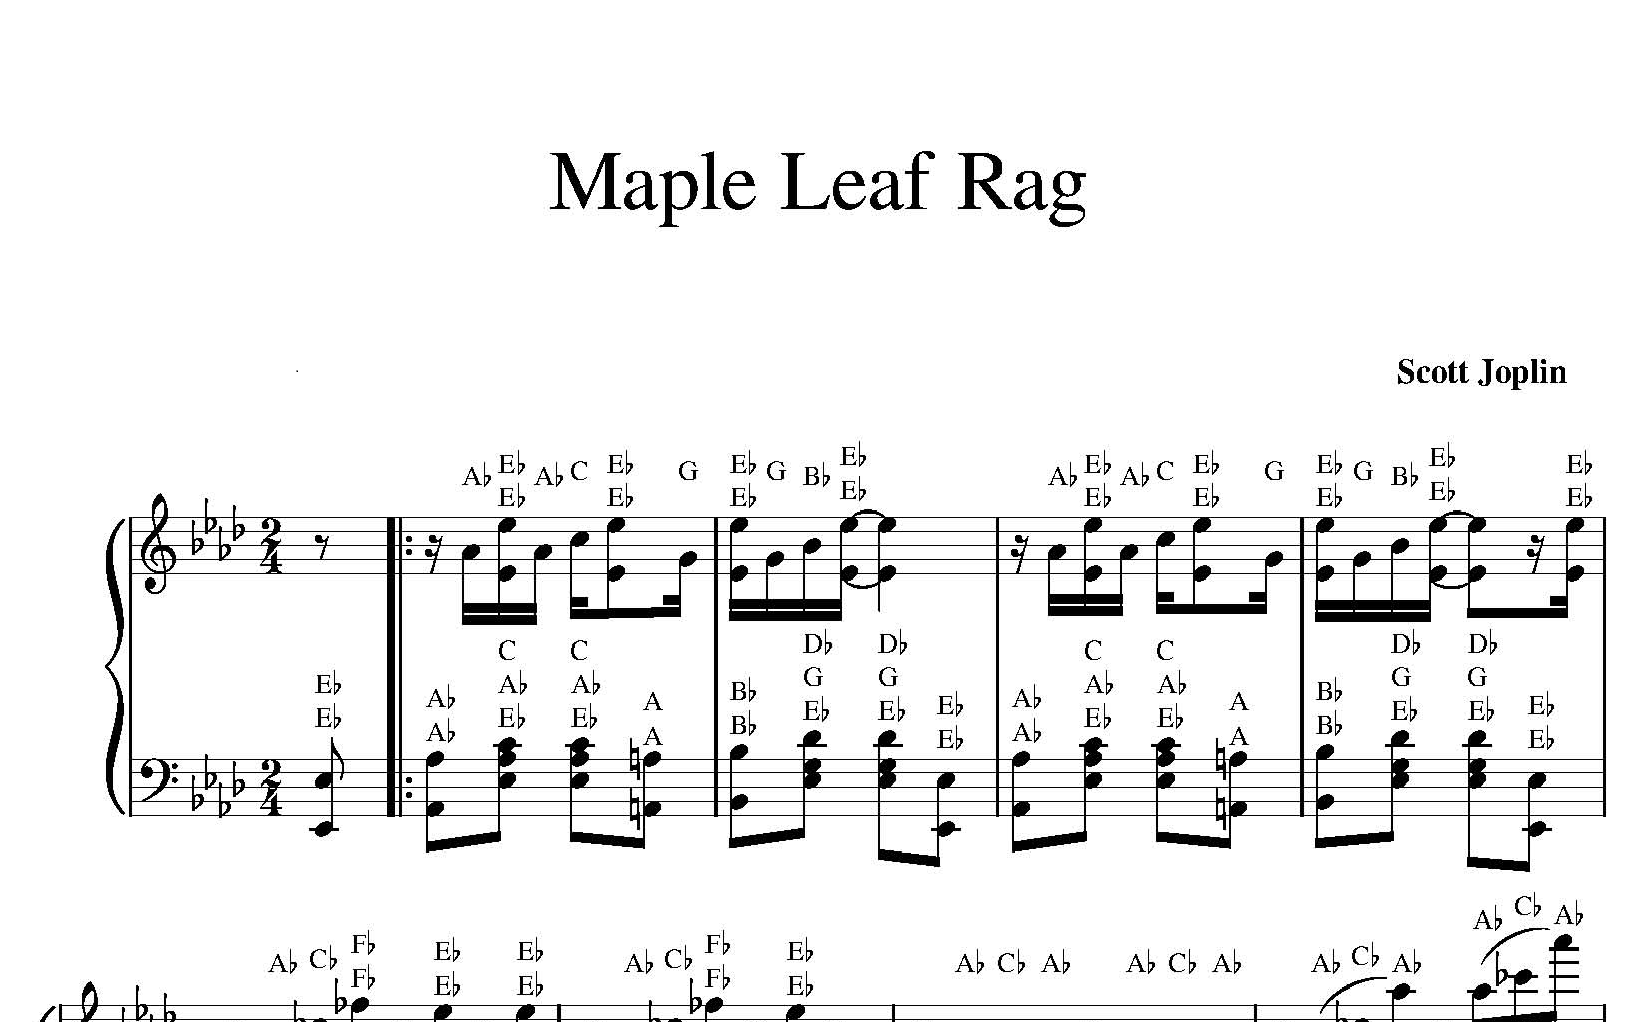 Maple Leaf Rag sheet music with letters